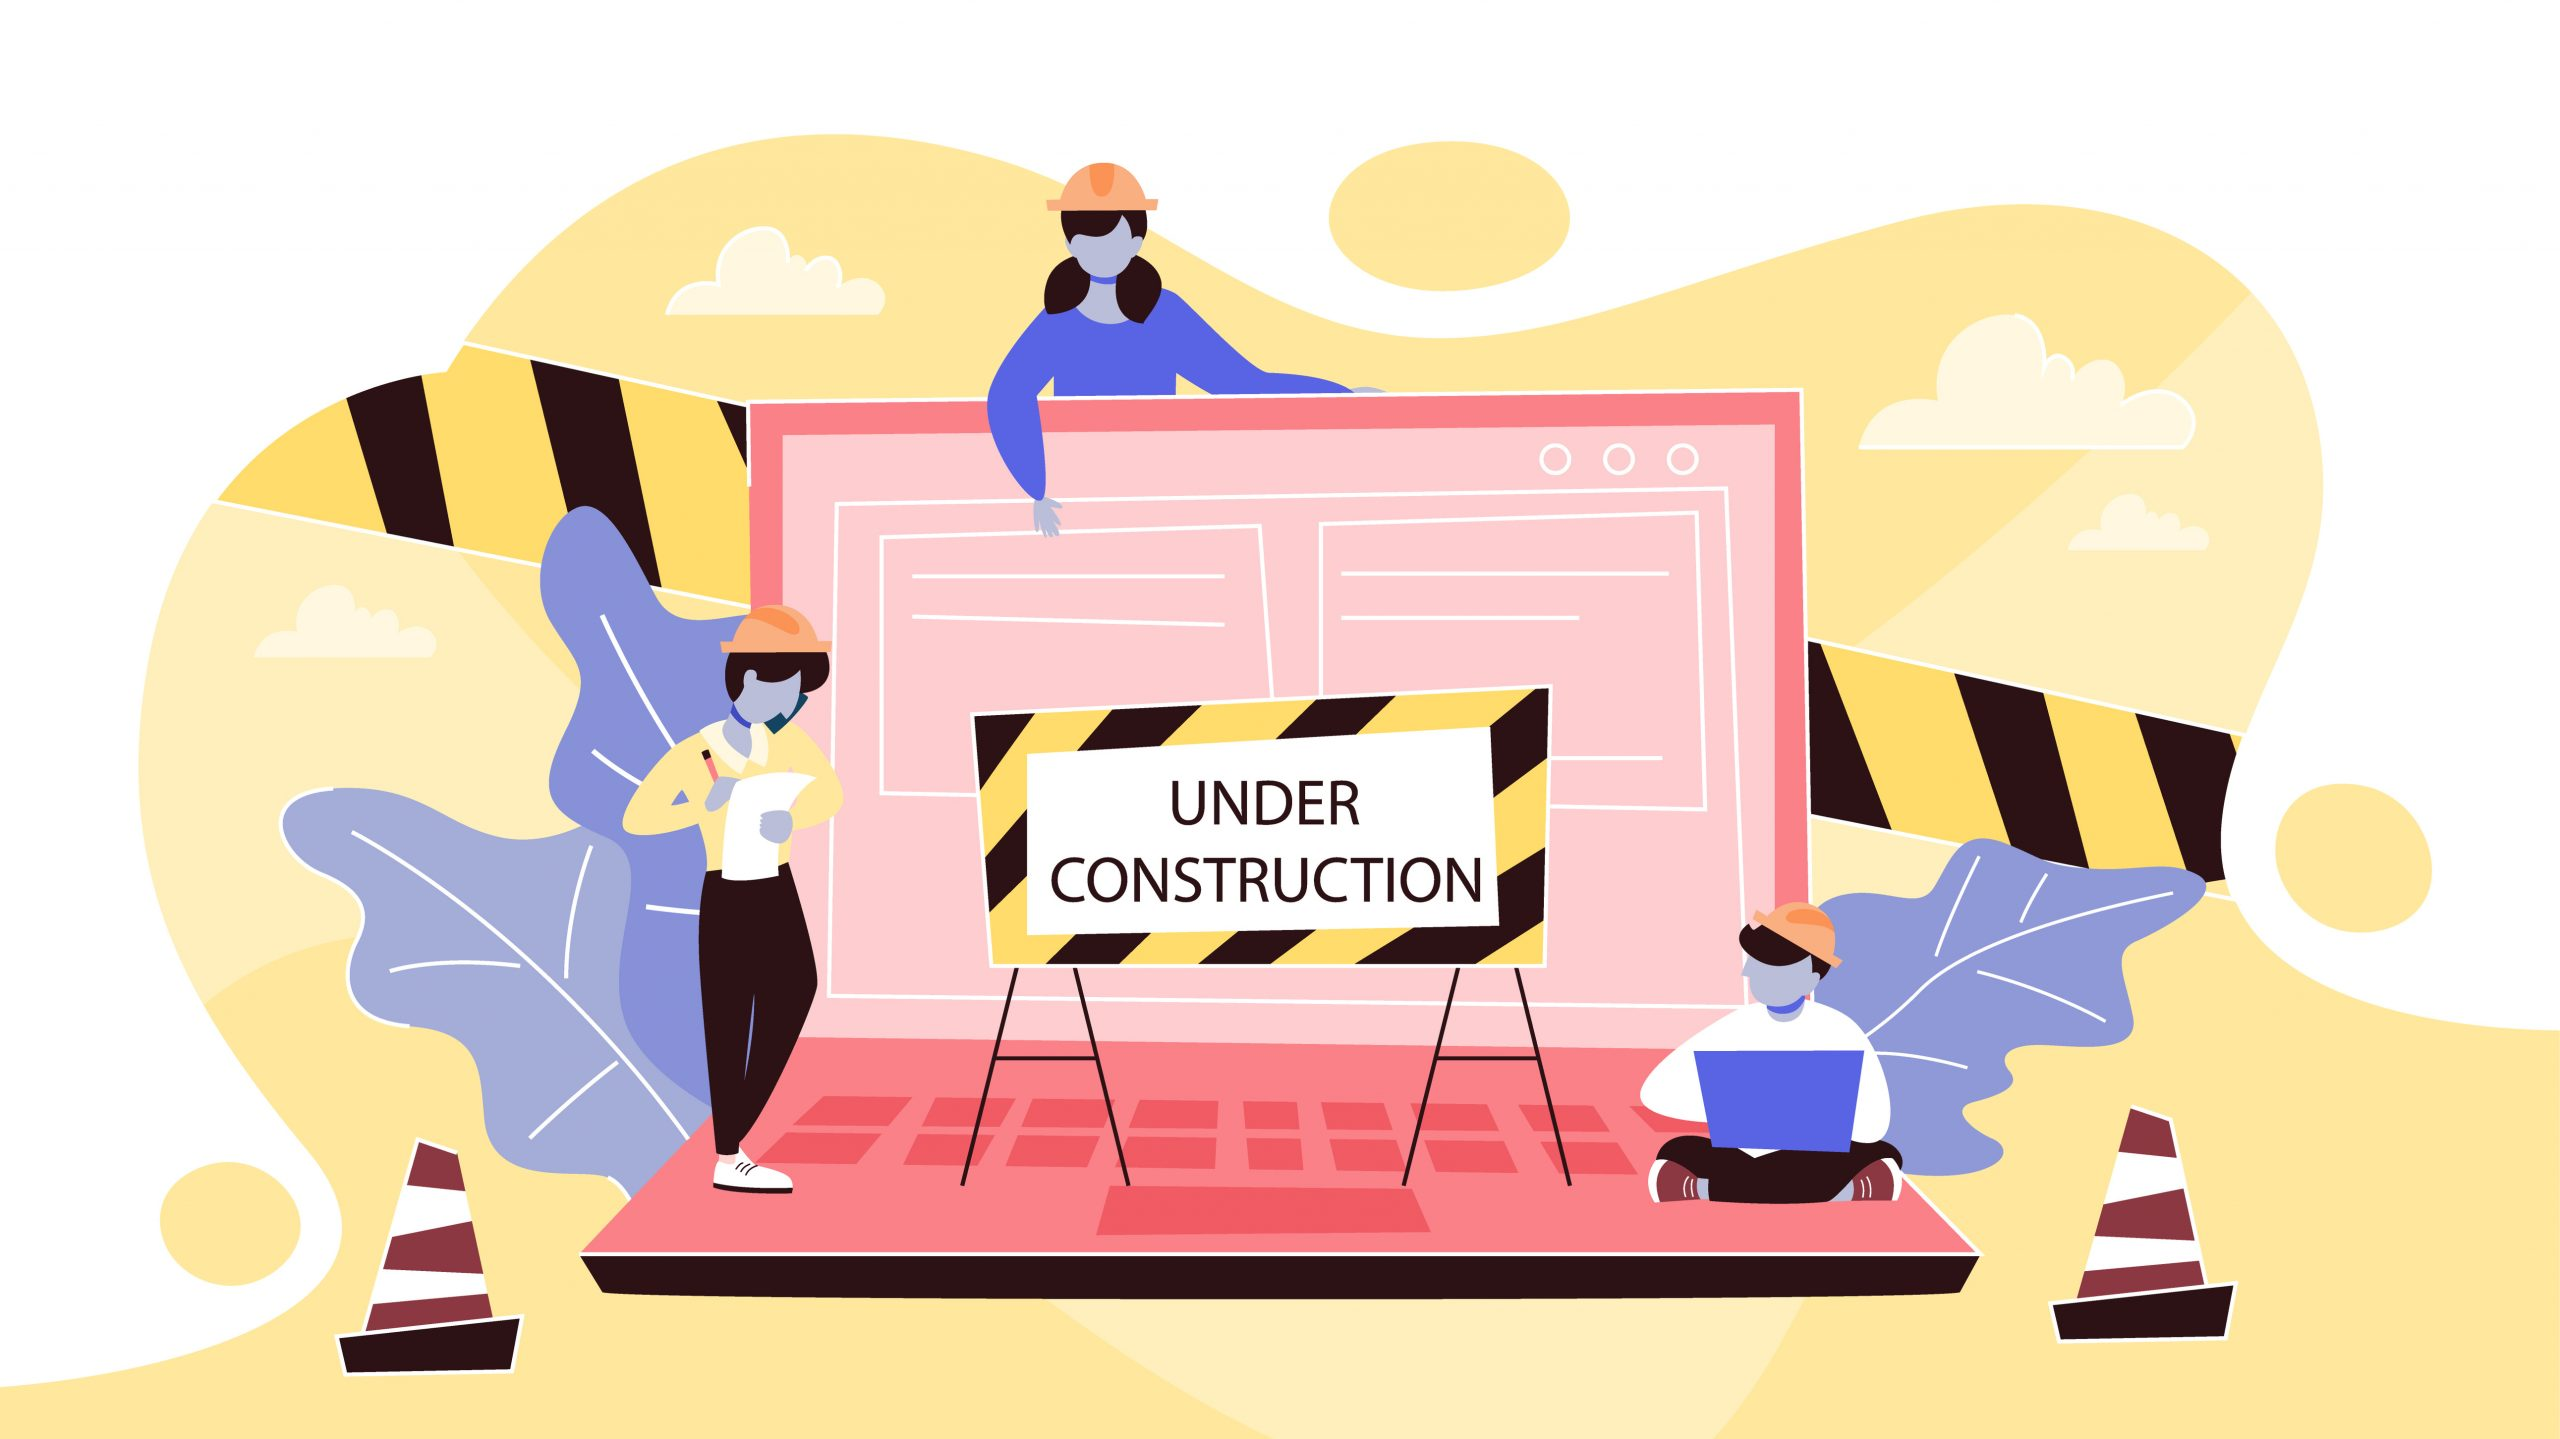 Website under construction page. Work in progress. Small people repare home page in the internet. Vector illustration in cartoon style